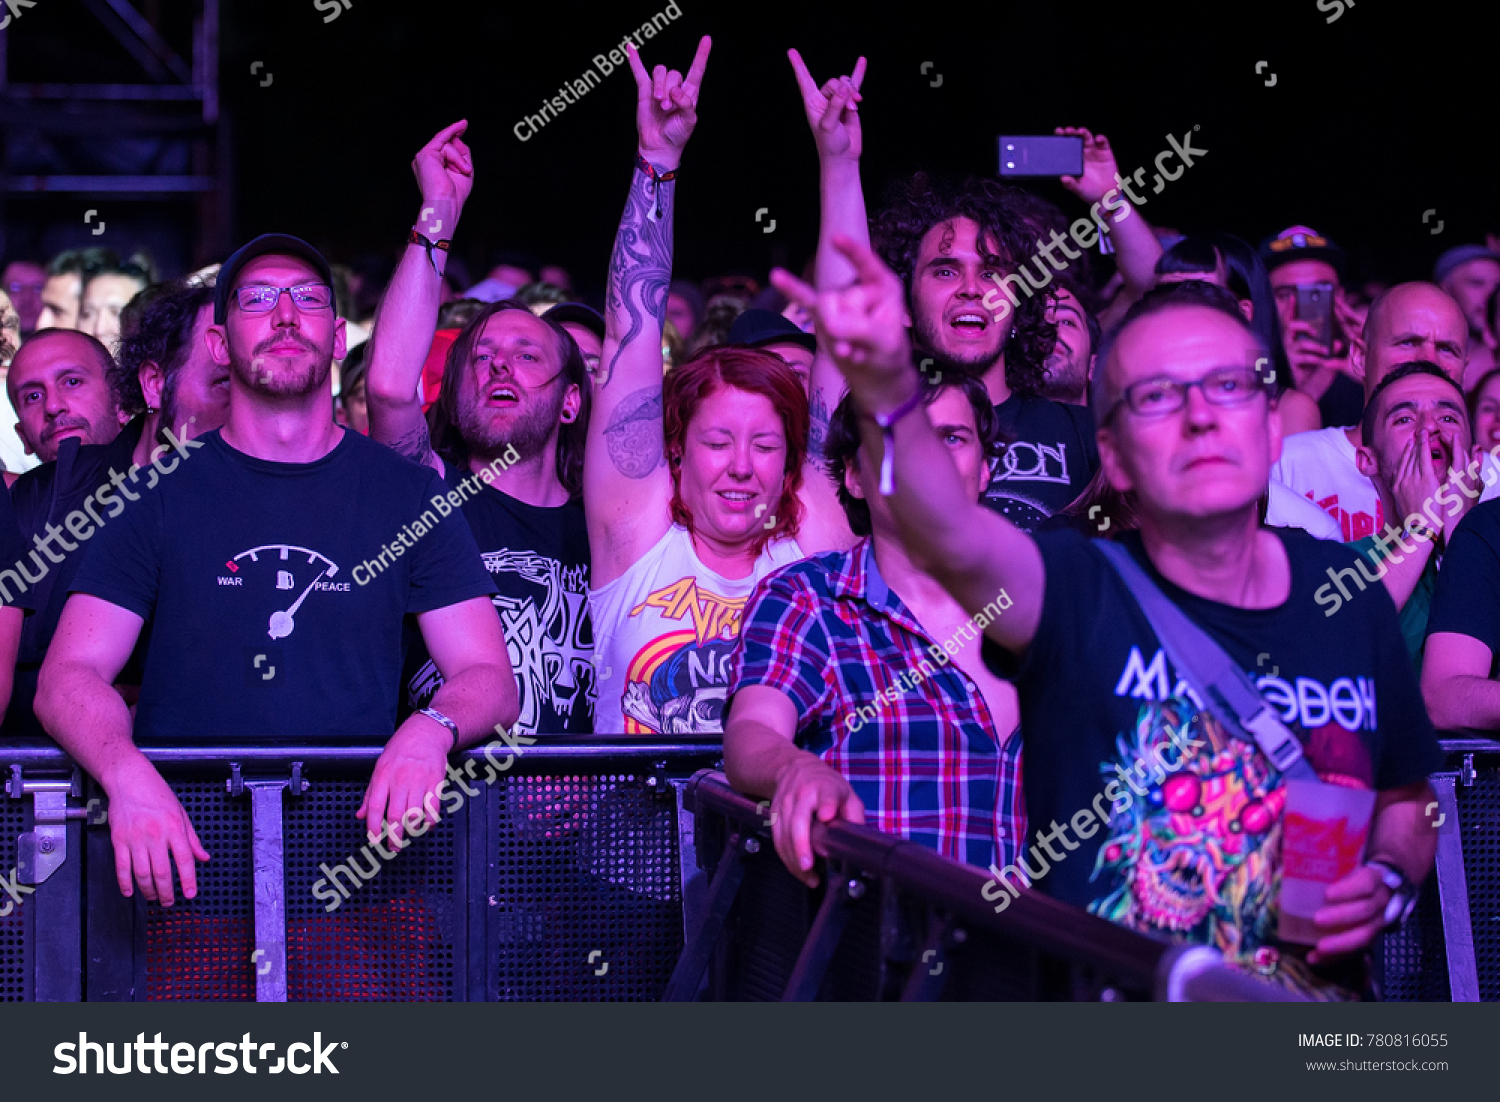 Madrid Jun 23 The Crowd In A Concert At Download Heavy Metal